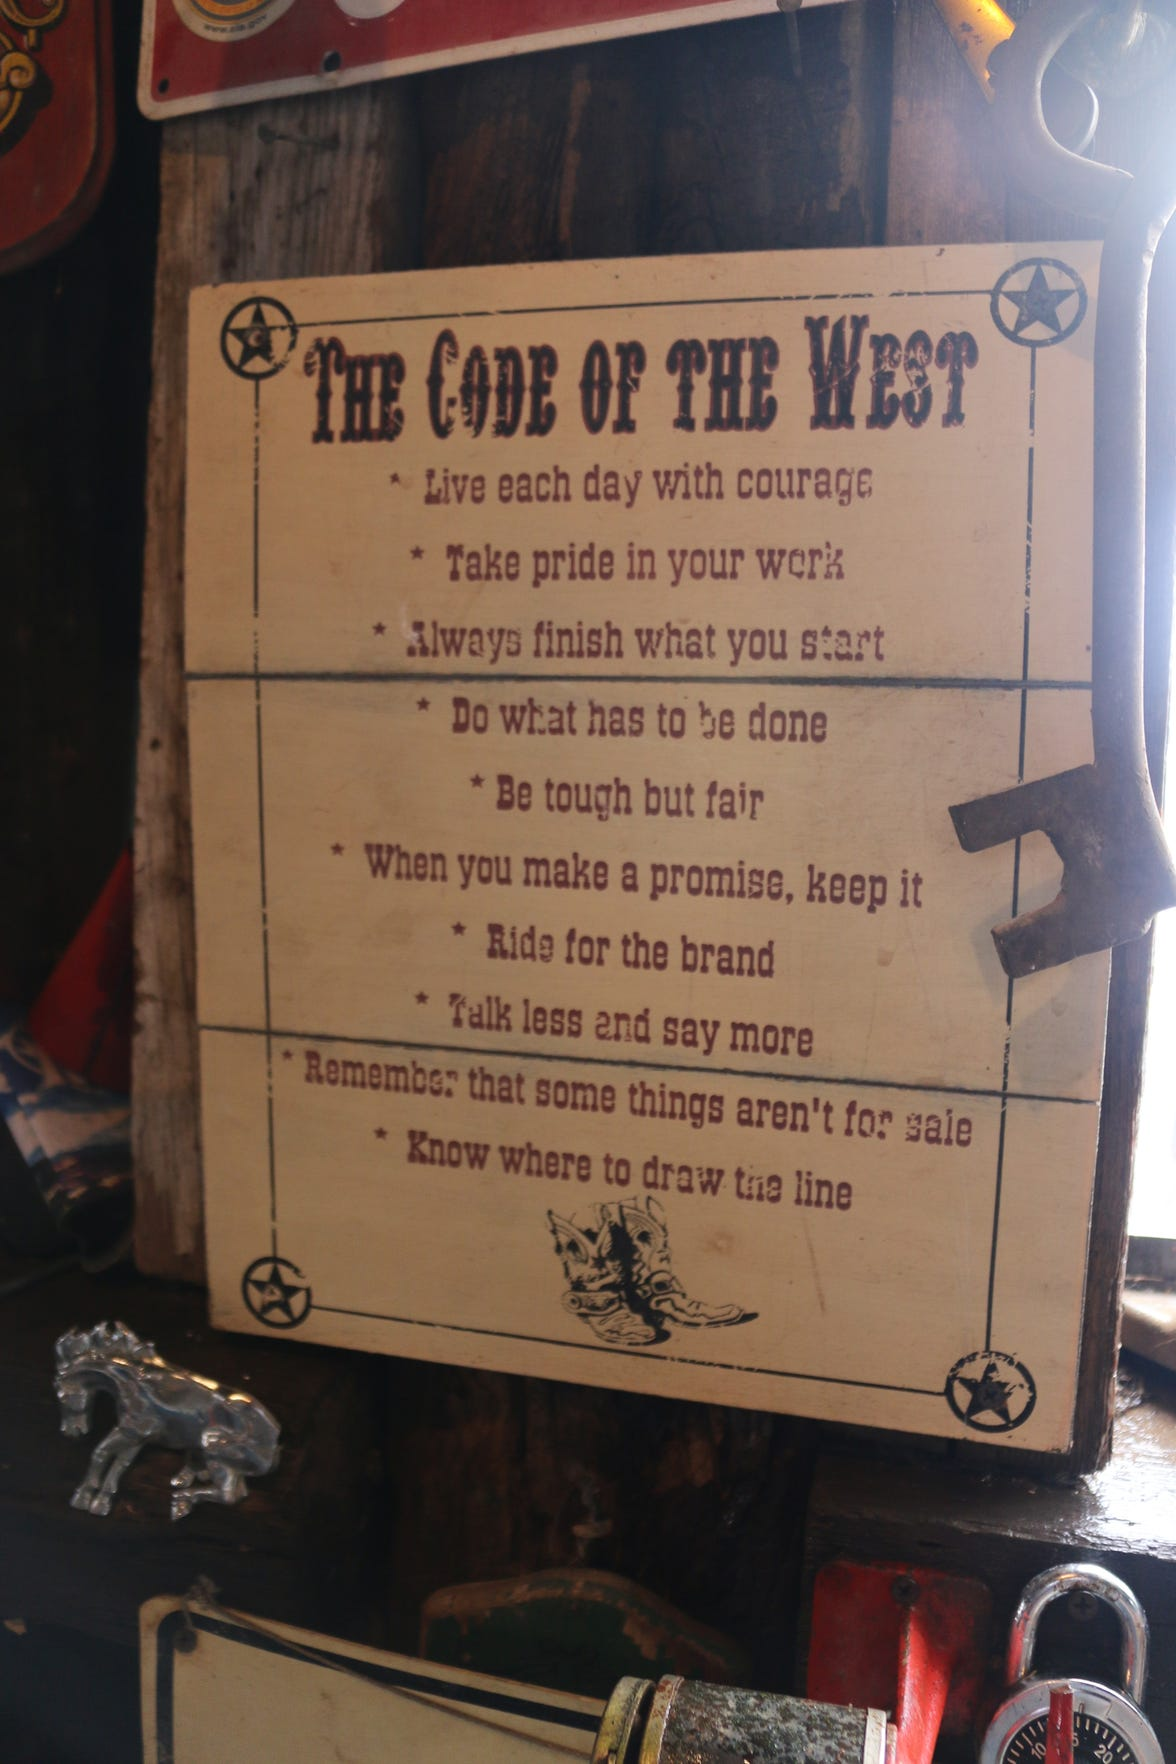 The Code of the West is posted inside the Blue Dog Saloon at Cowtown Keeylocko.